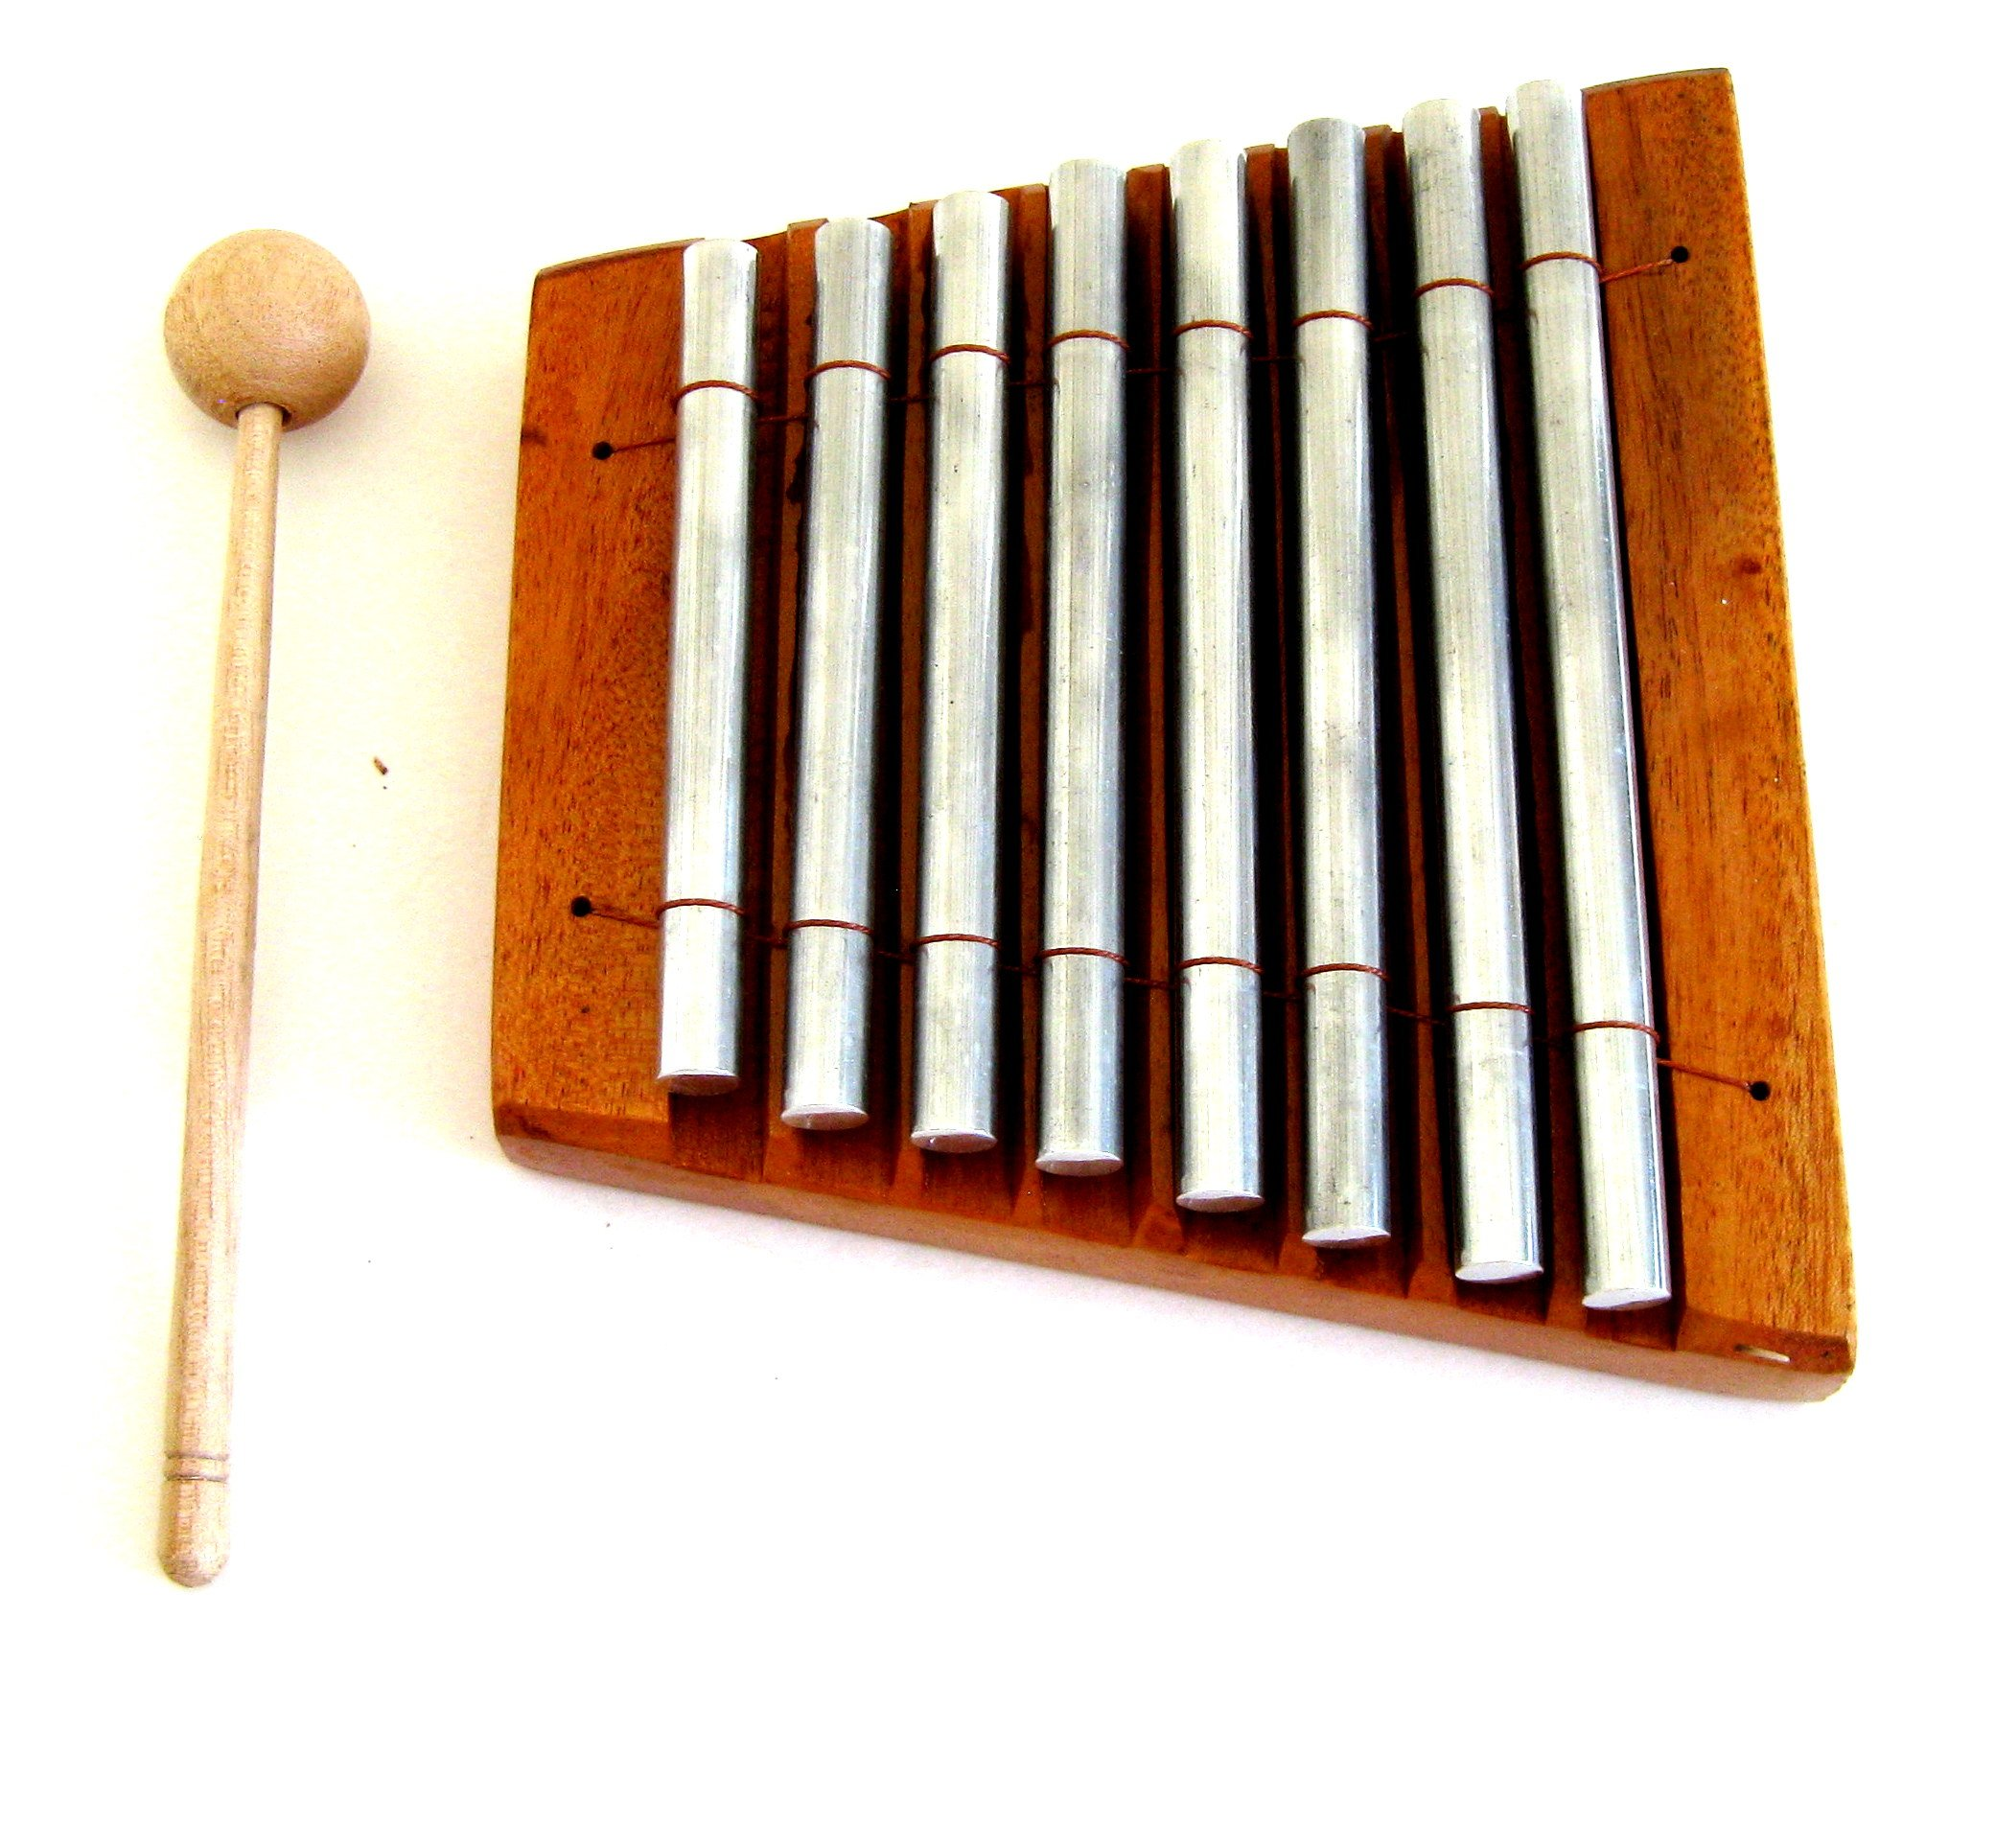 Meditation ZEN Energy Chime Wood Percussion Table Top Chime, 8 Bars - Xylophone - Premium Quality - PROFESSIONAL SOUND- JIVE BRAND by Jive